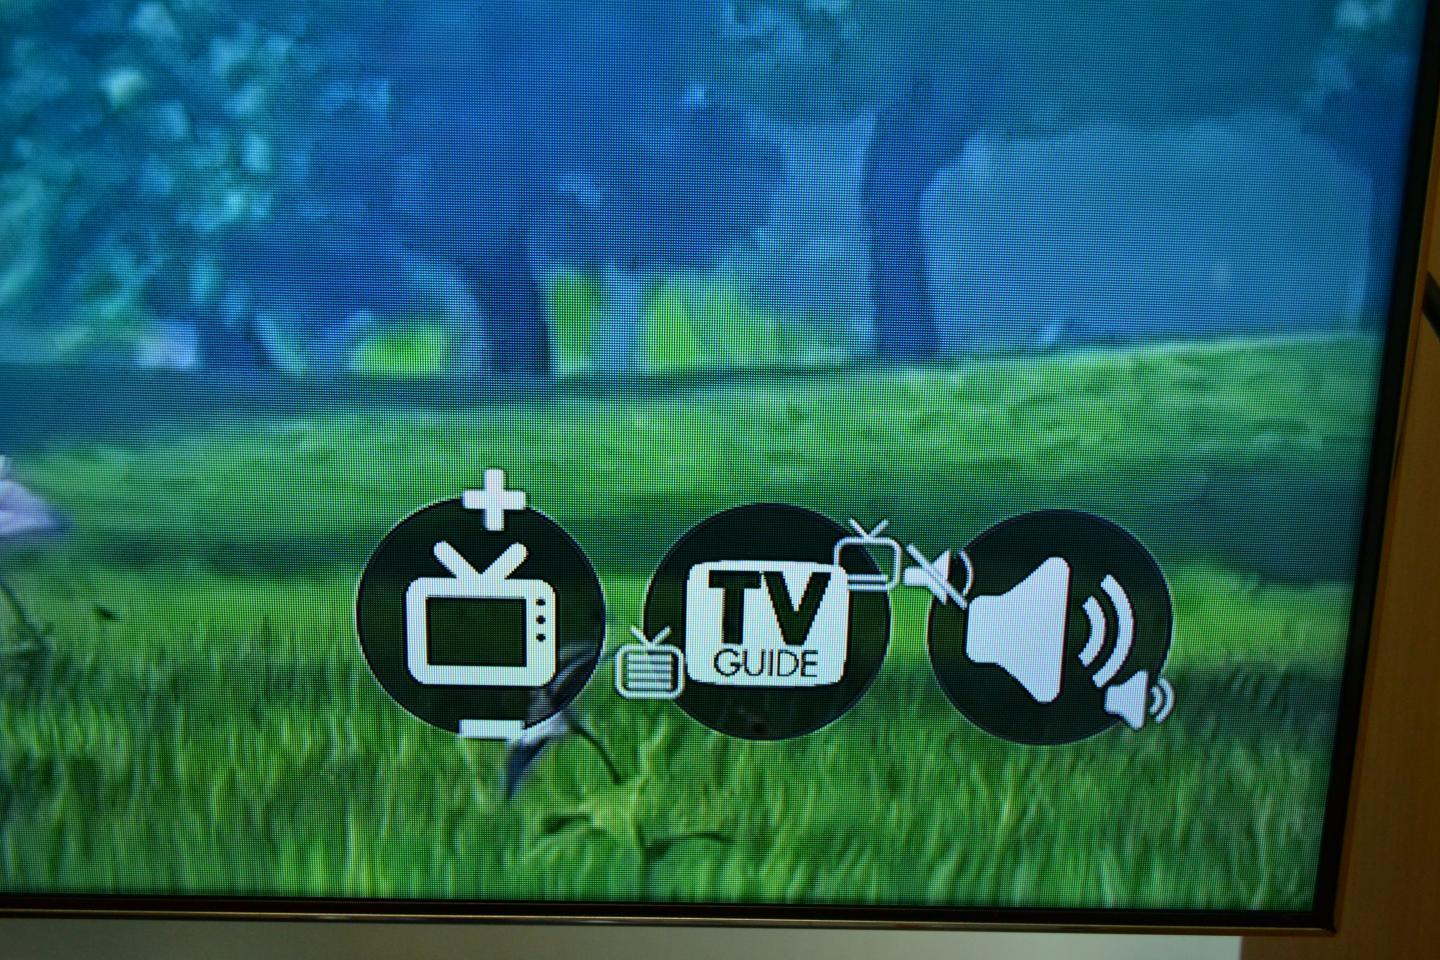 In one corner of the TV screen, there are a group of small circular widgets representing functions such as volume control or channel-changing